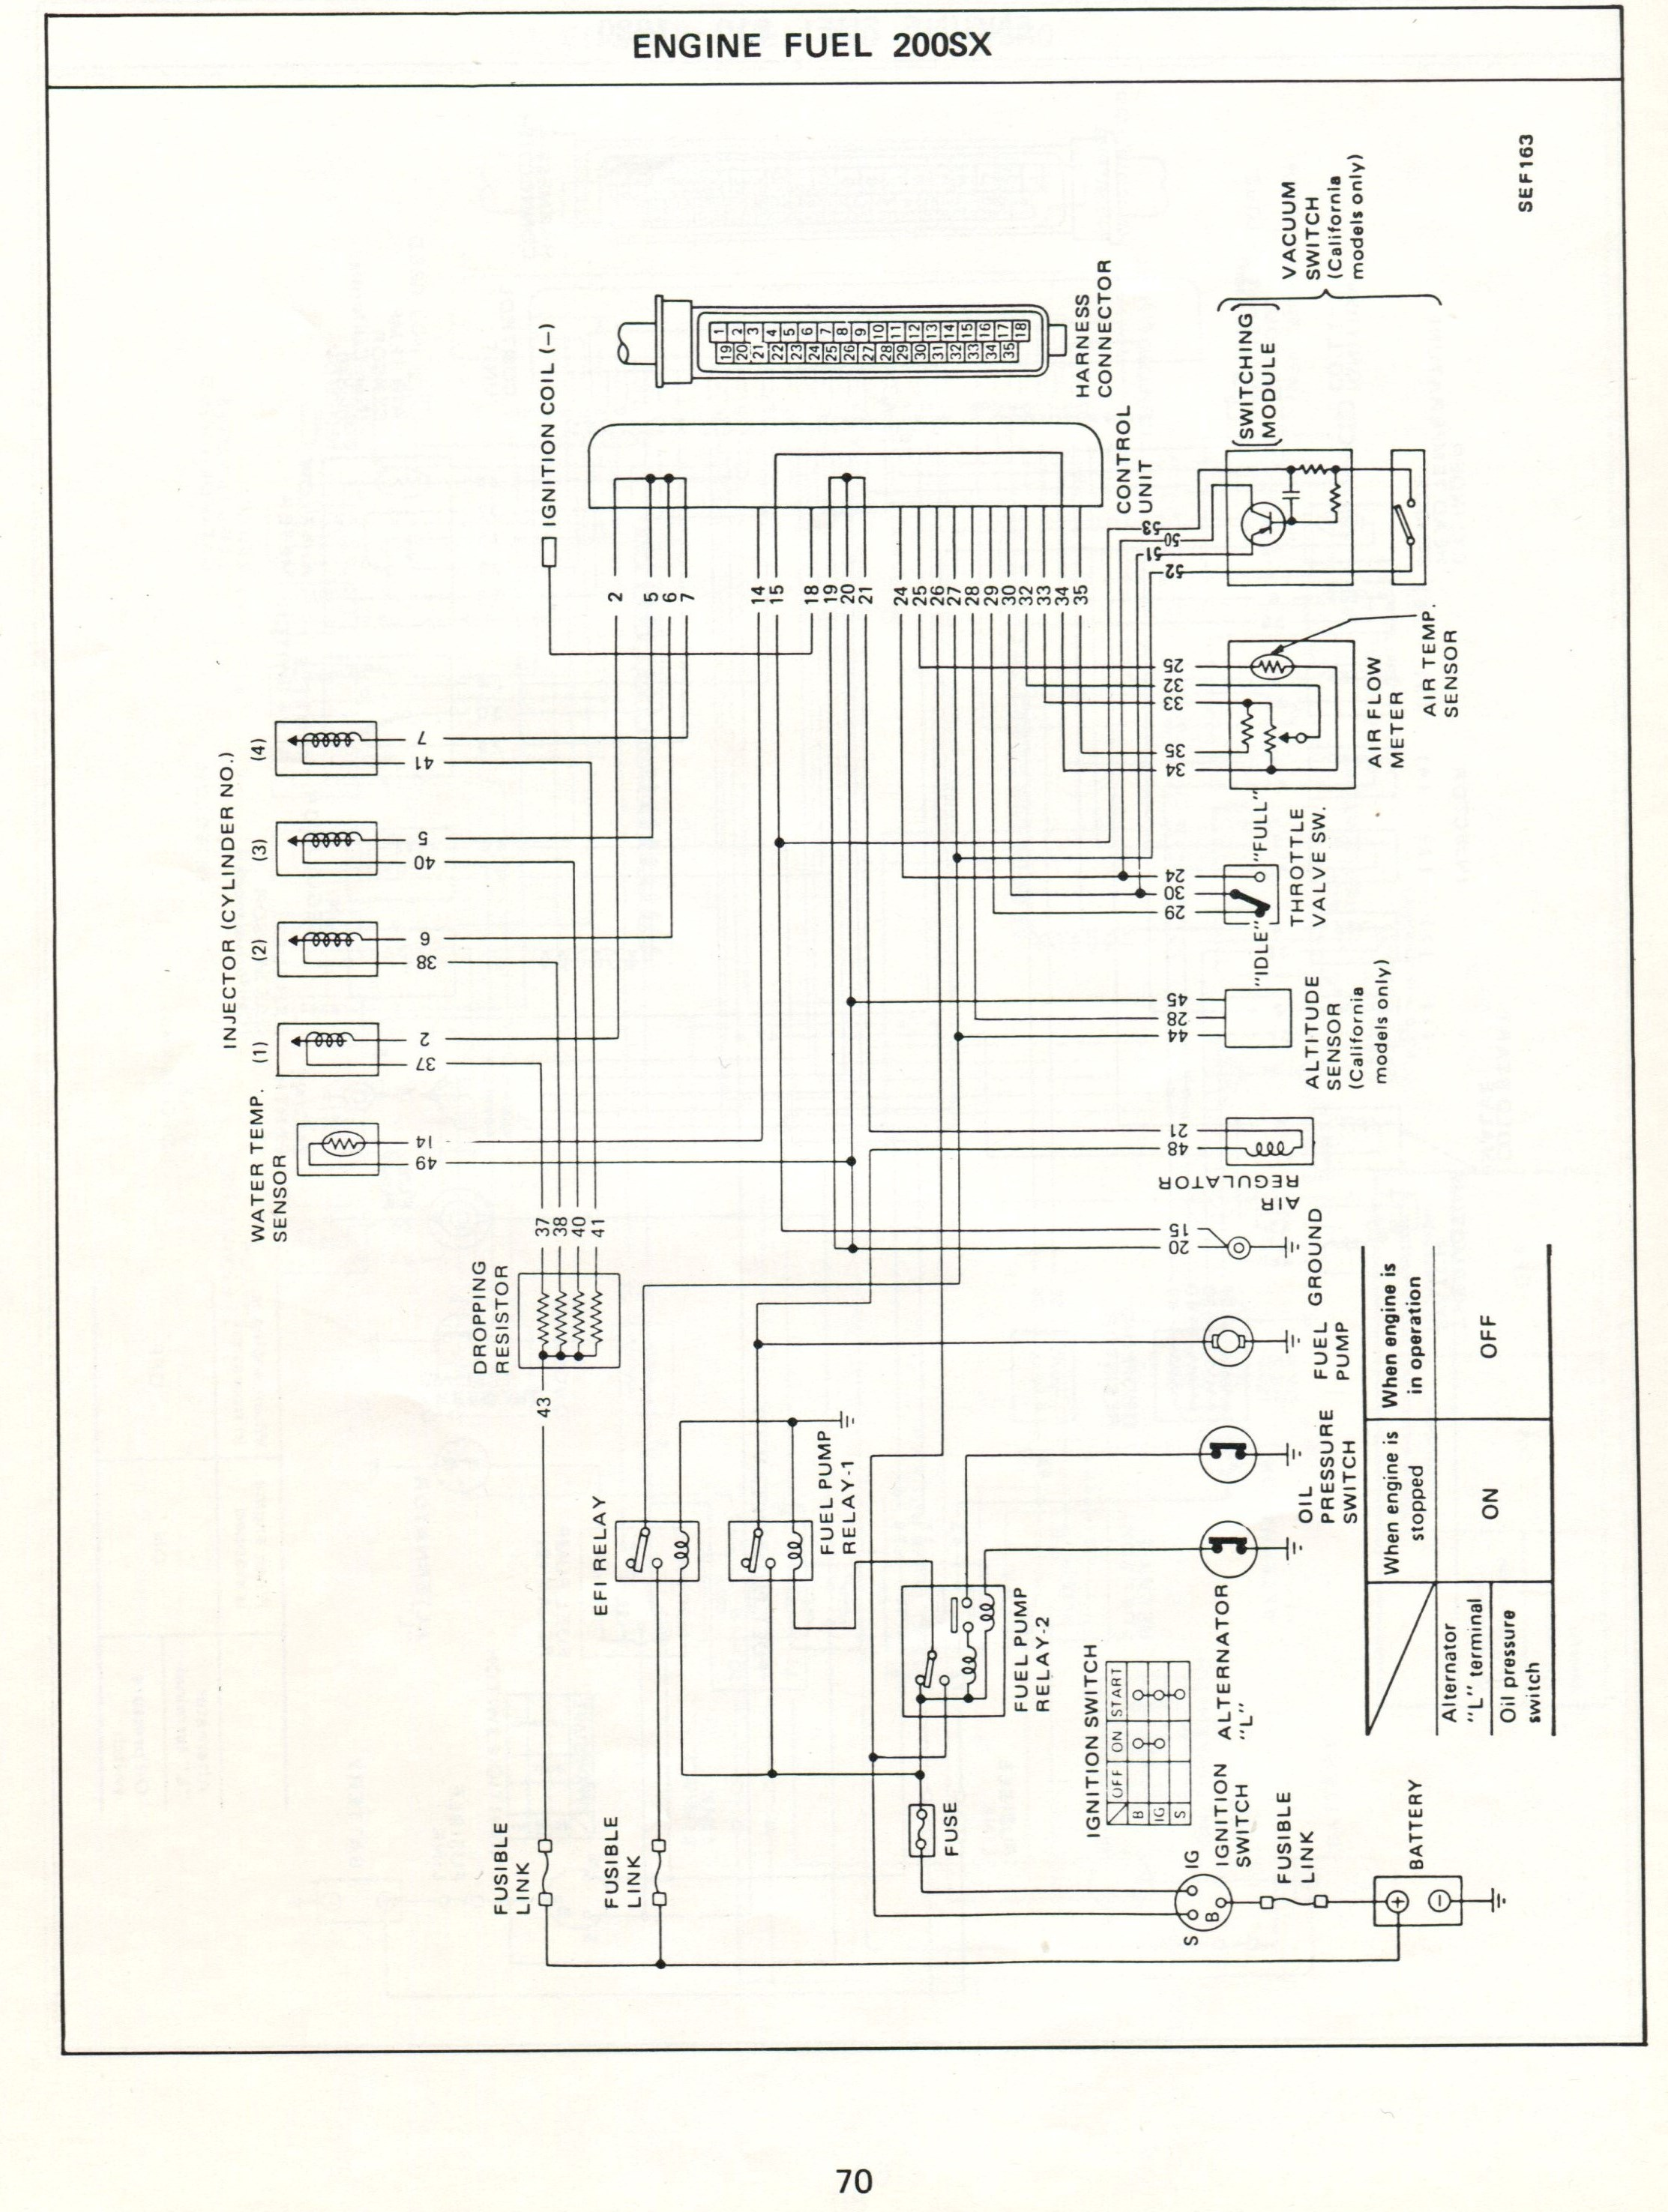 Wiring Diagram For 1988 Nissan 300zx Library Datsun Electronic Fuel Injection Diagrams Rh Datsunforum Com Wire